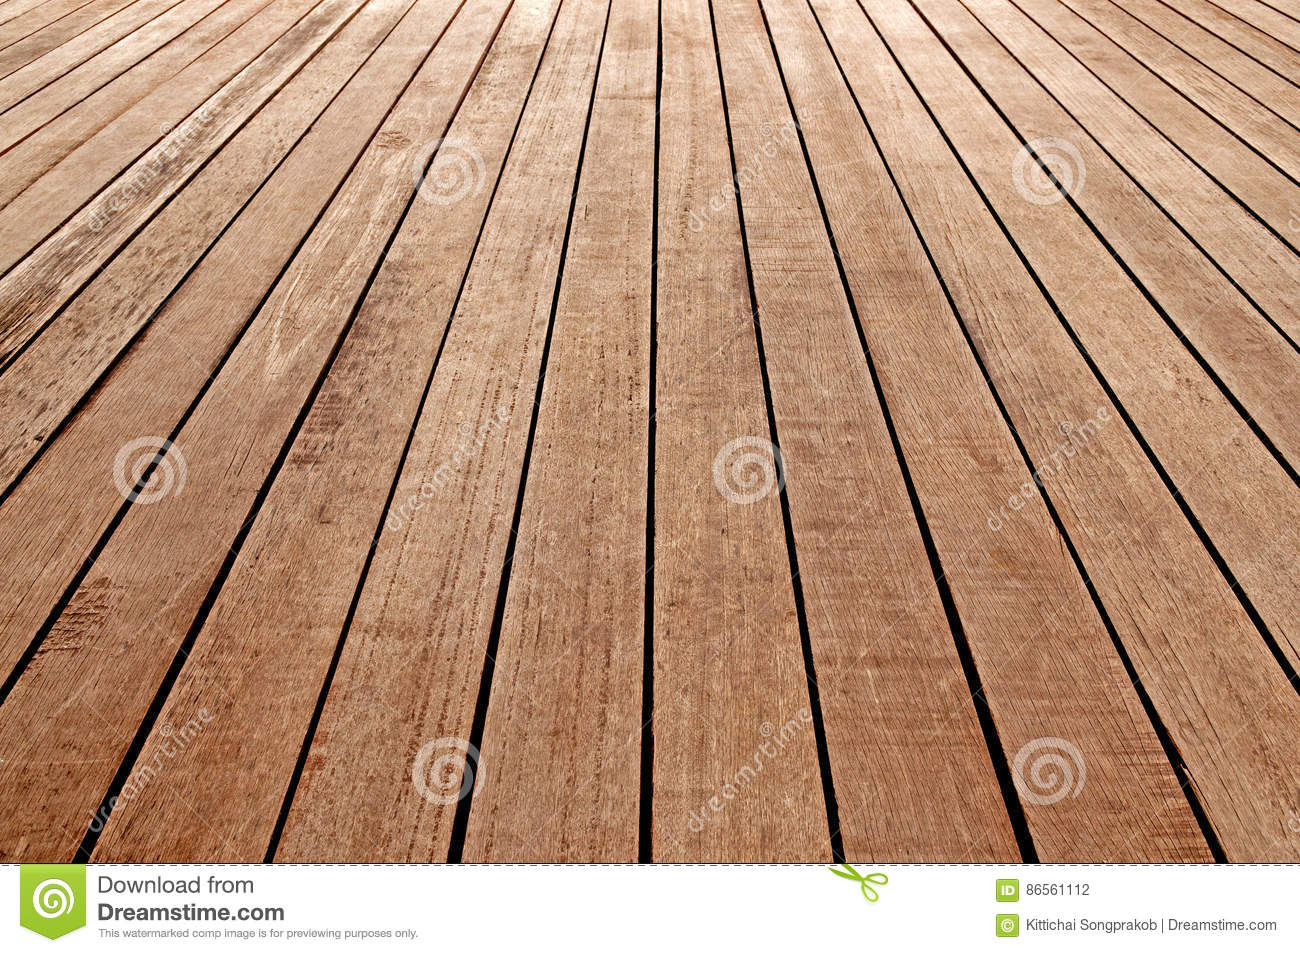 wood floor perspective. Perspective Wooden Floor. Old Wood Texture Floor 7